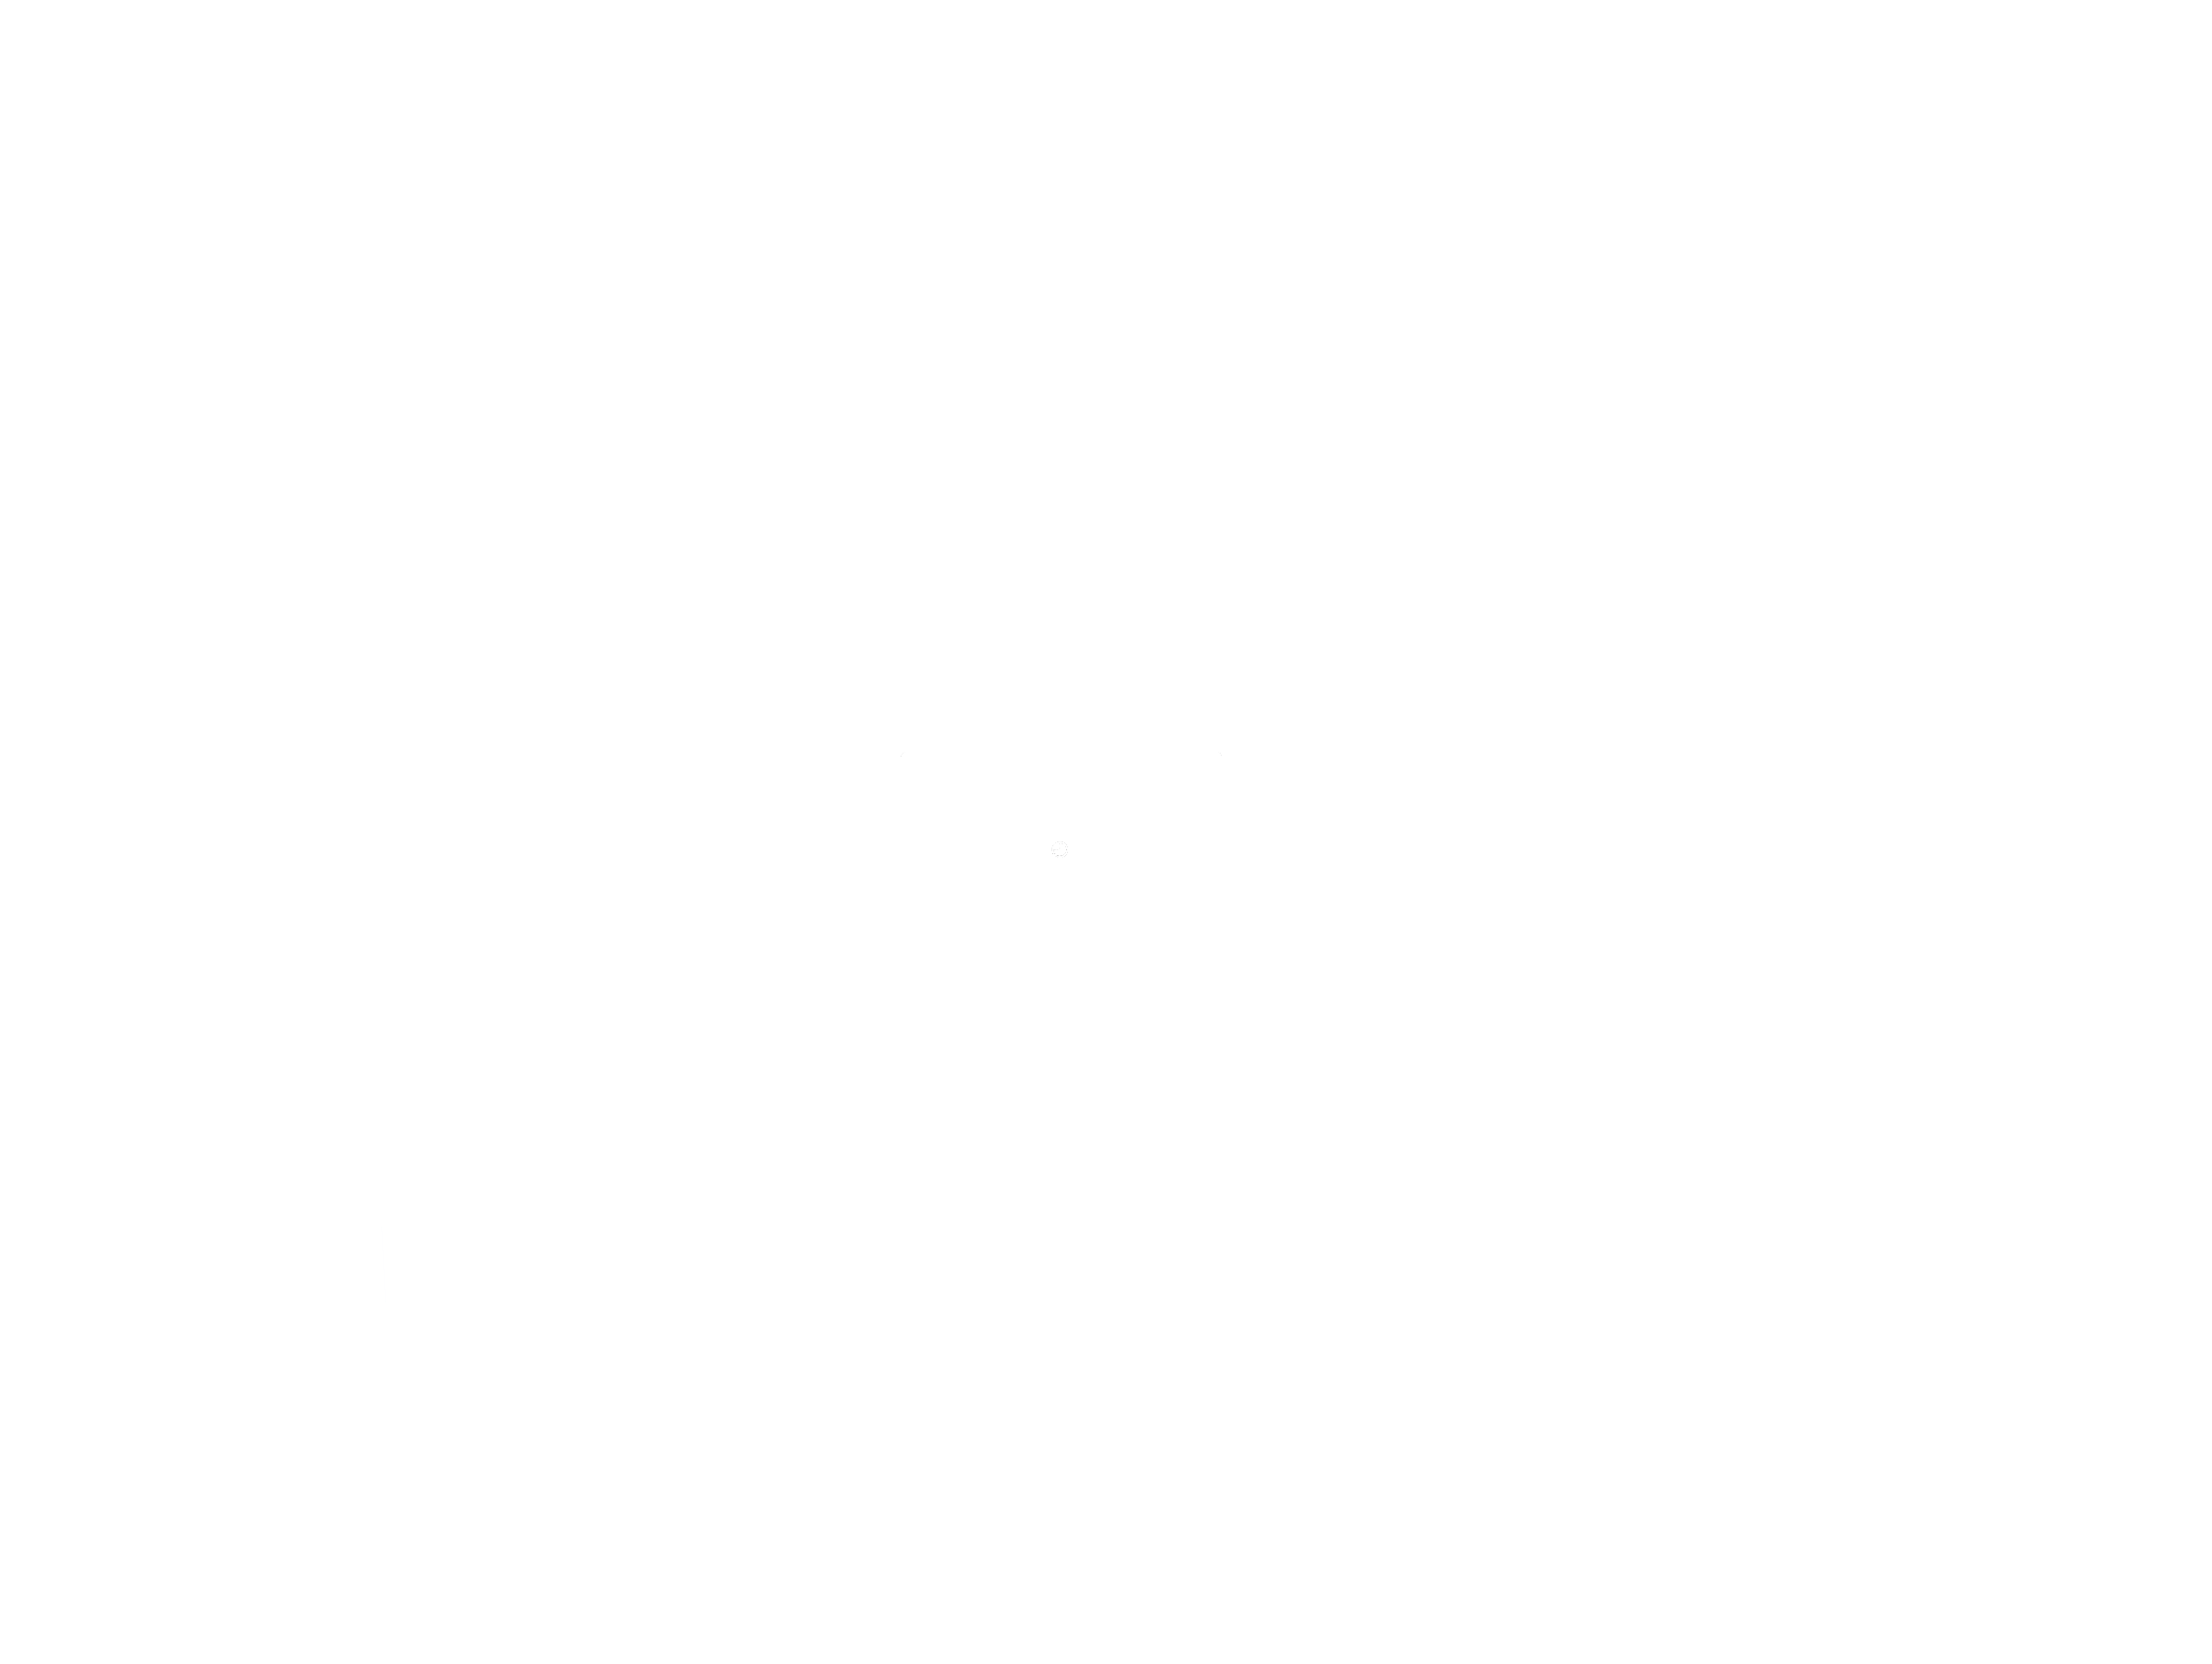 Ocean Picture Productions